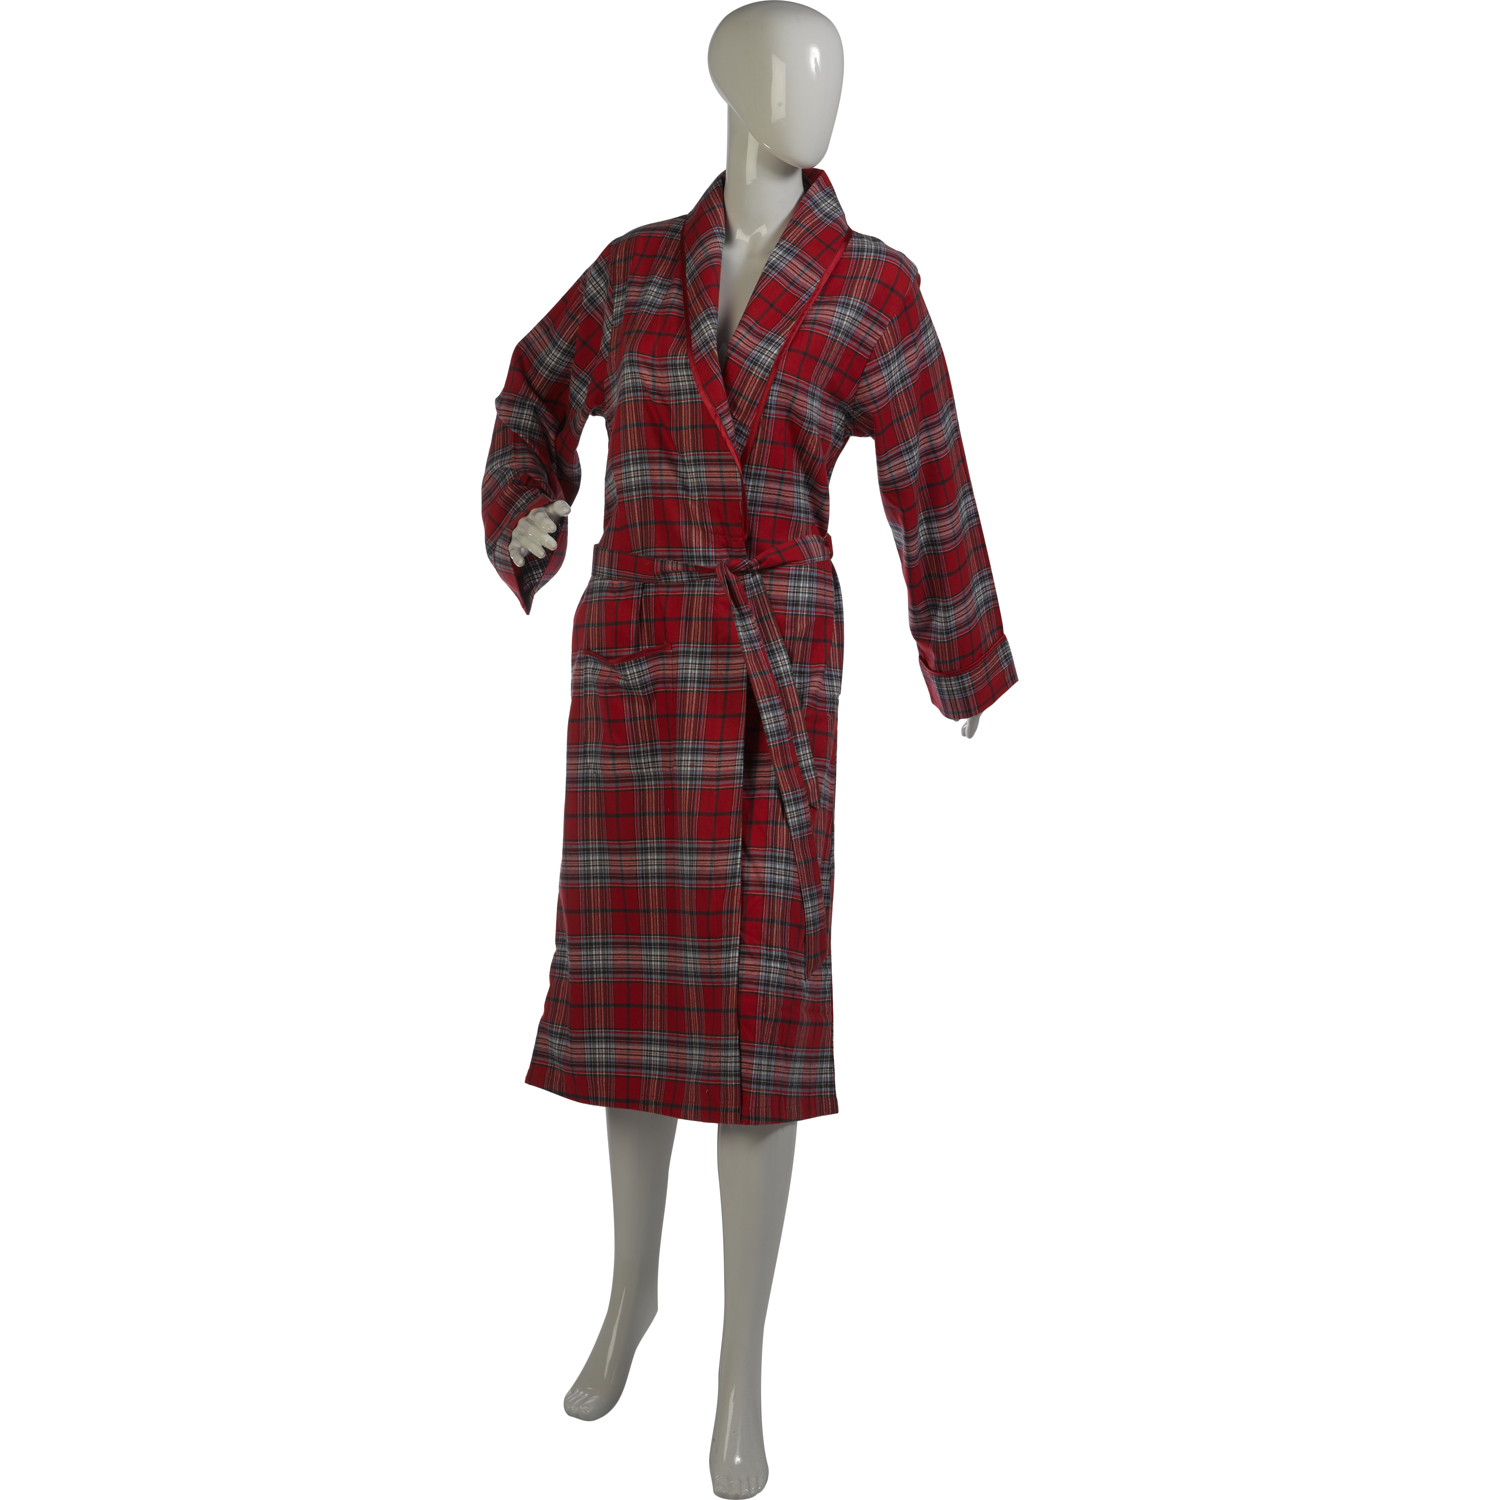 Shop stylish dressing gowns & robes for women. Browse towelling gowns for a chic addition to your essentials. Next day delivery & free returns available. Women's Dressing Gowns & Robes. White Cotton Waffle Robe. £ White Cotton Paisley Robe. £ Blue Cloud Carved Robe. £ Navy Lightweight Robe.